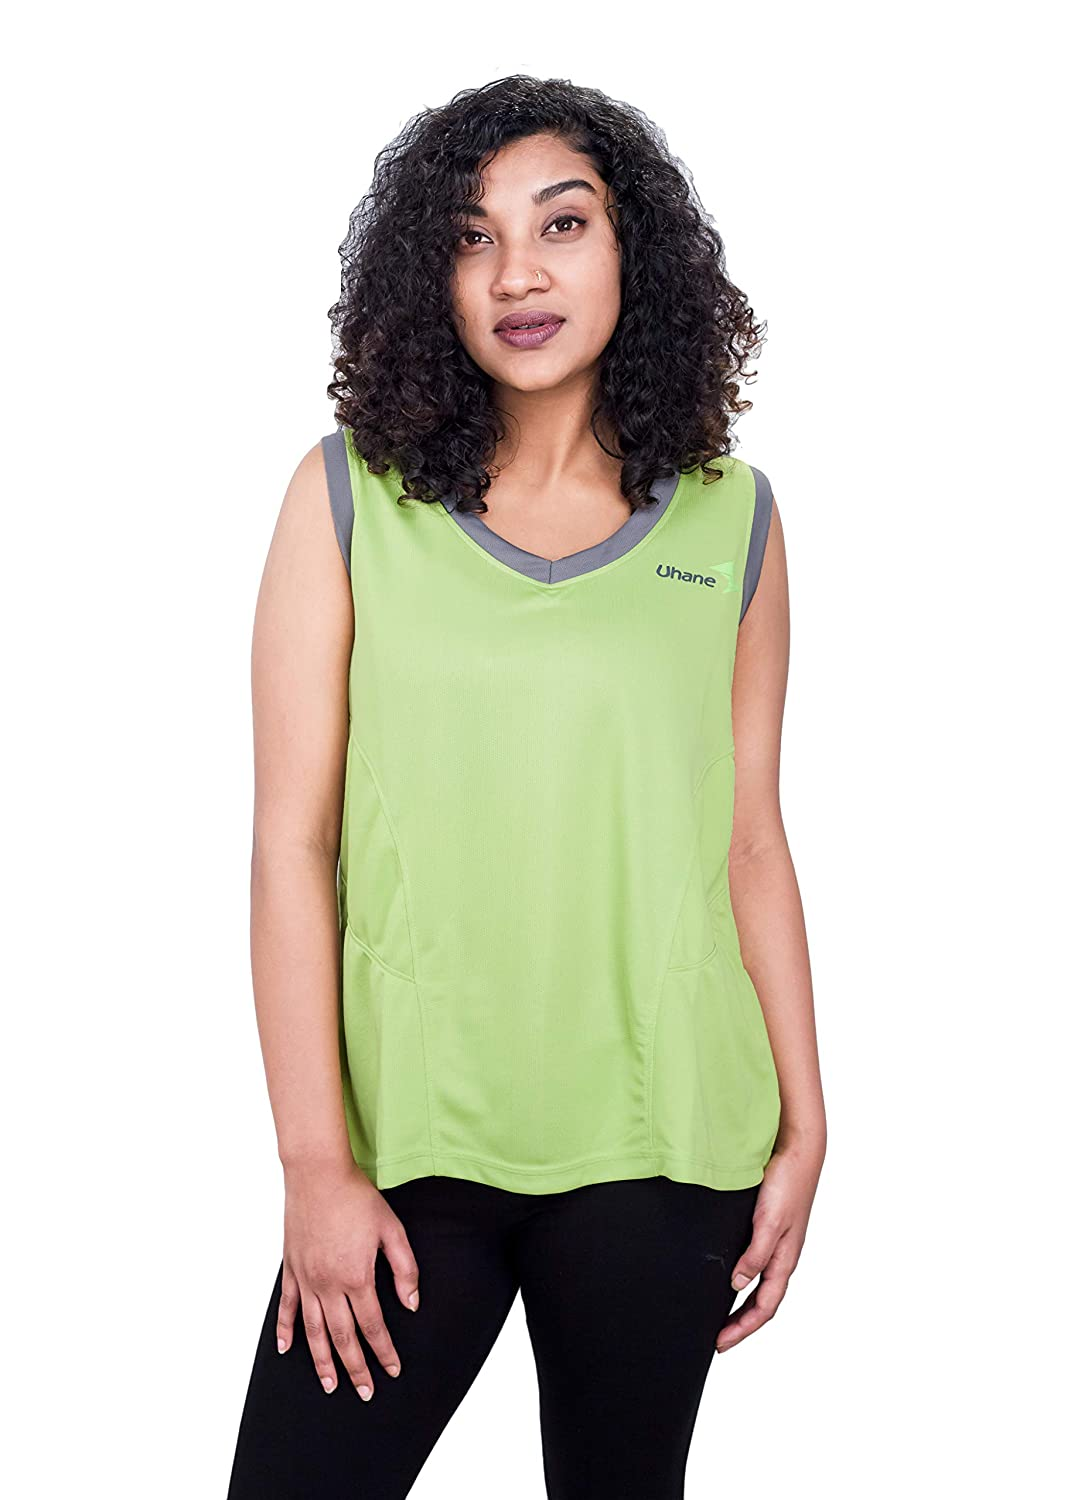 Uhane Women's Gym Dri-Fit Work-Out Deep V-Neck Loose Fit T-Shirt (Lime Green) Sleeveless Top for Sports and Fitness